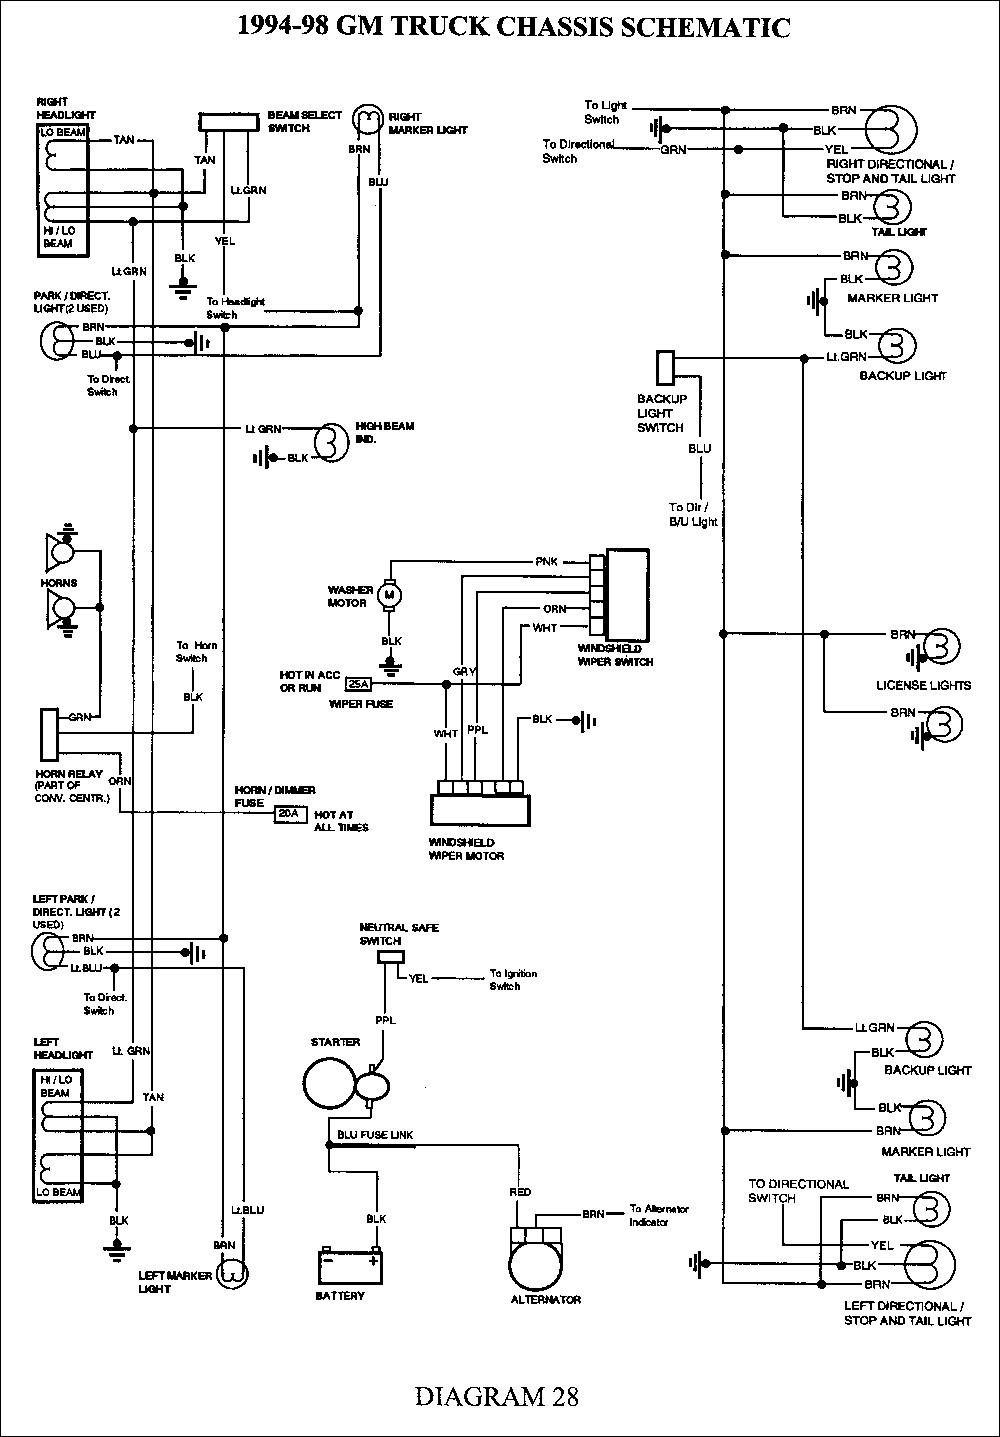 95914 Camera Wiring Diagram Free Download Chevrolet Express Library Sony Sensor At